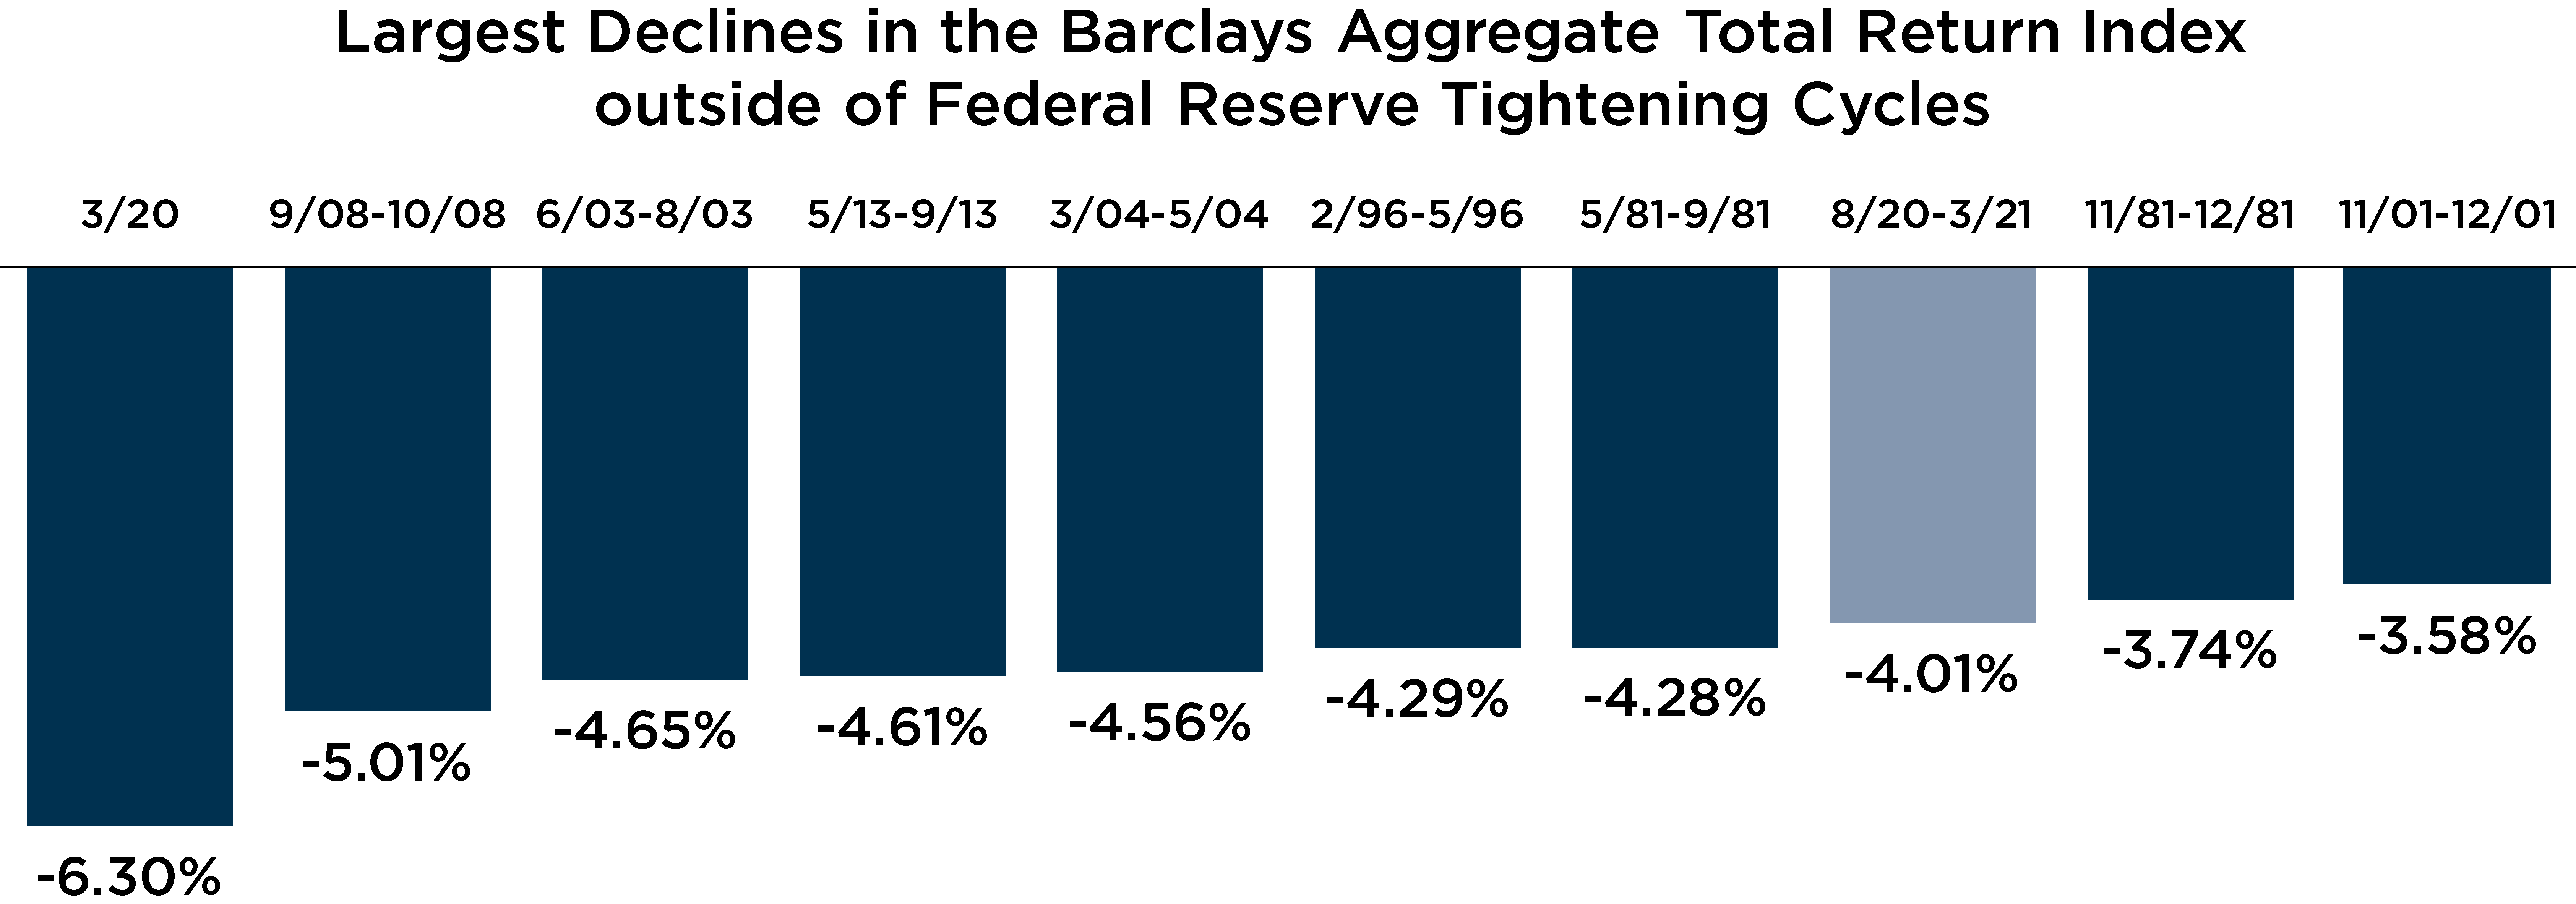 Graph depicting largest declines in the Barclays aggregate total return index